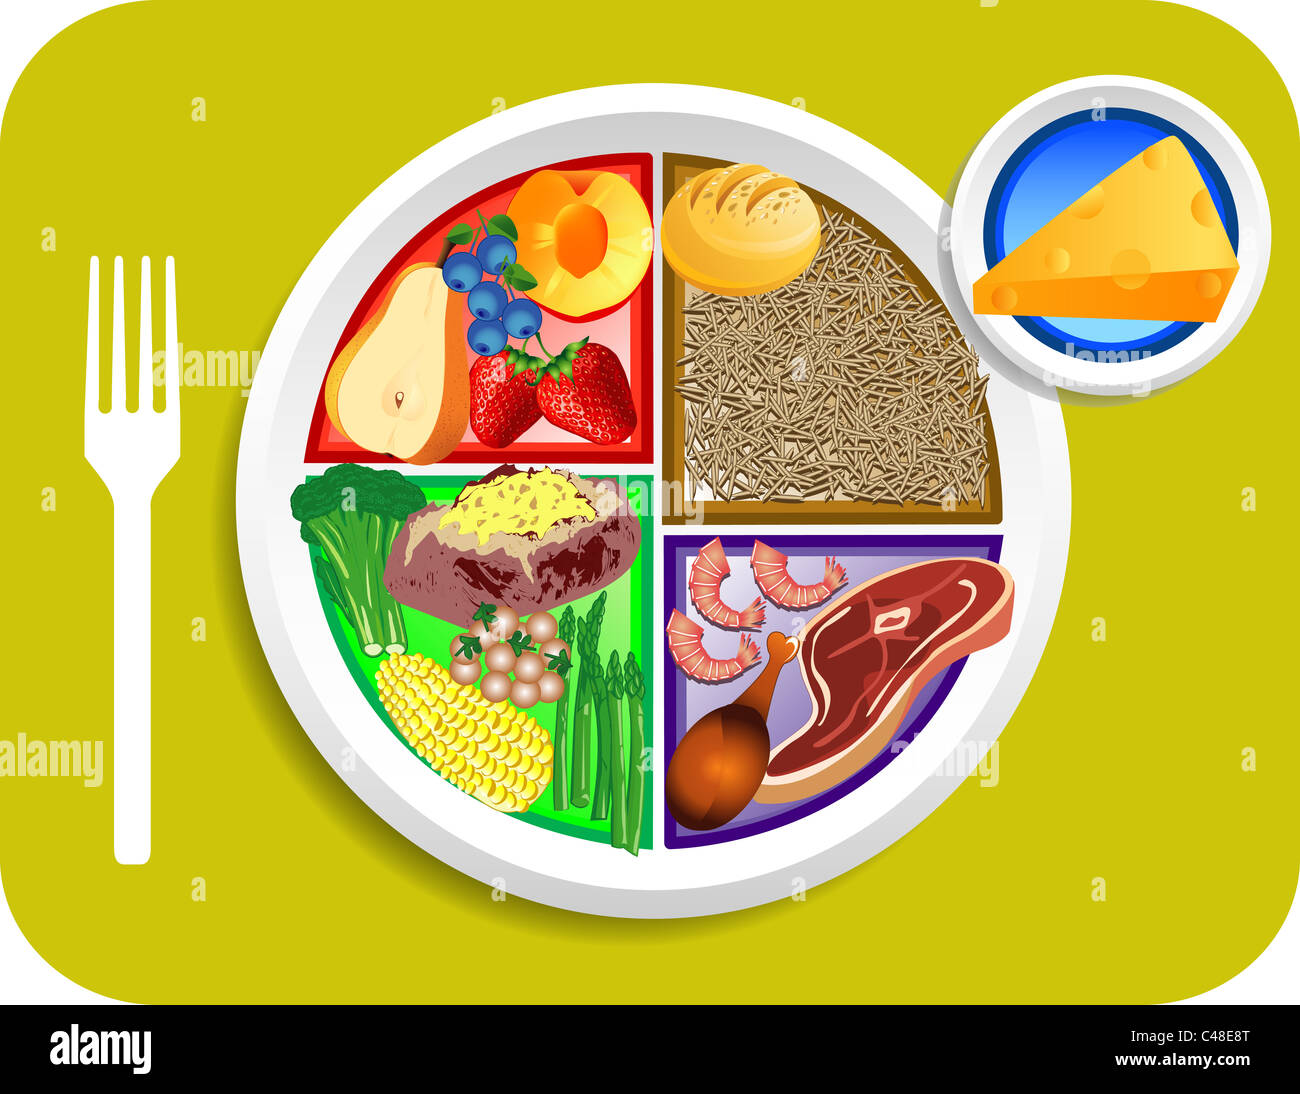 My Plate replaces food pyramid I have some labeled and some for breakfast lunch or dinner.  sc 1 st  Alamy & My Plate replaces food pyramid I have some labeled and some for ...